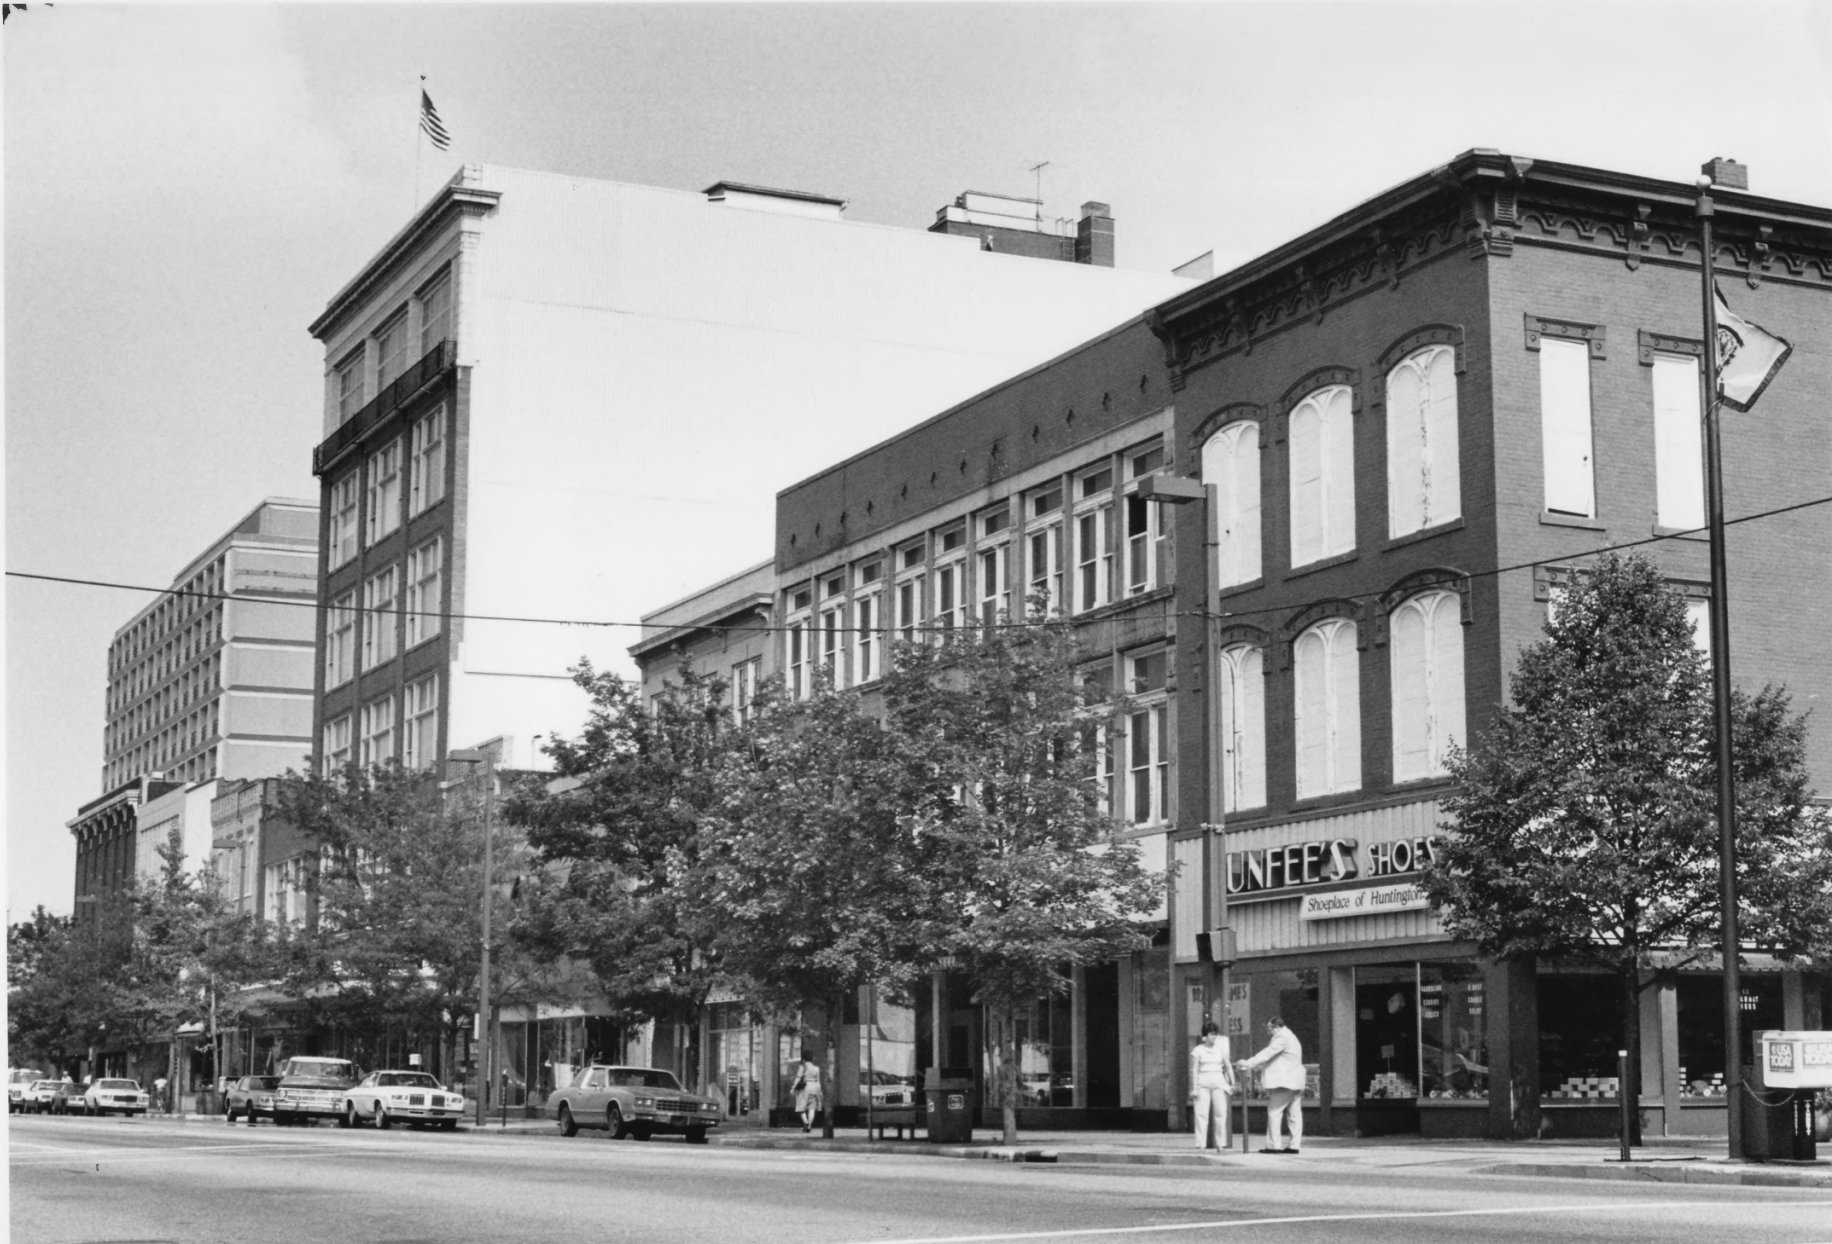 3rd Avenue with the Broh Building, housing Dunfee's Shoes, in 1985